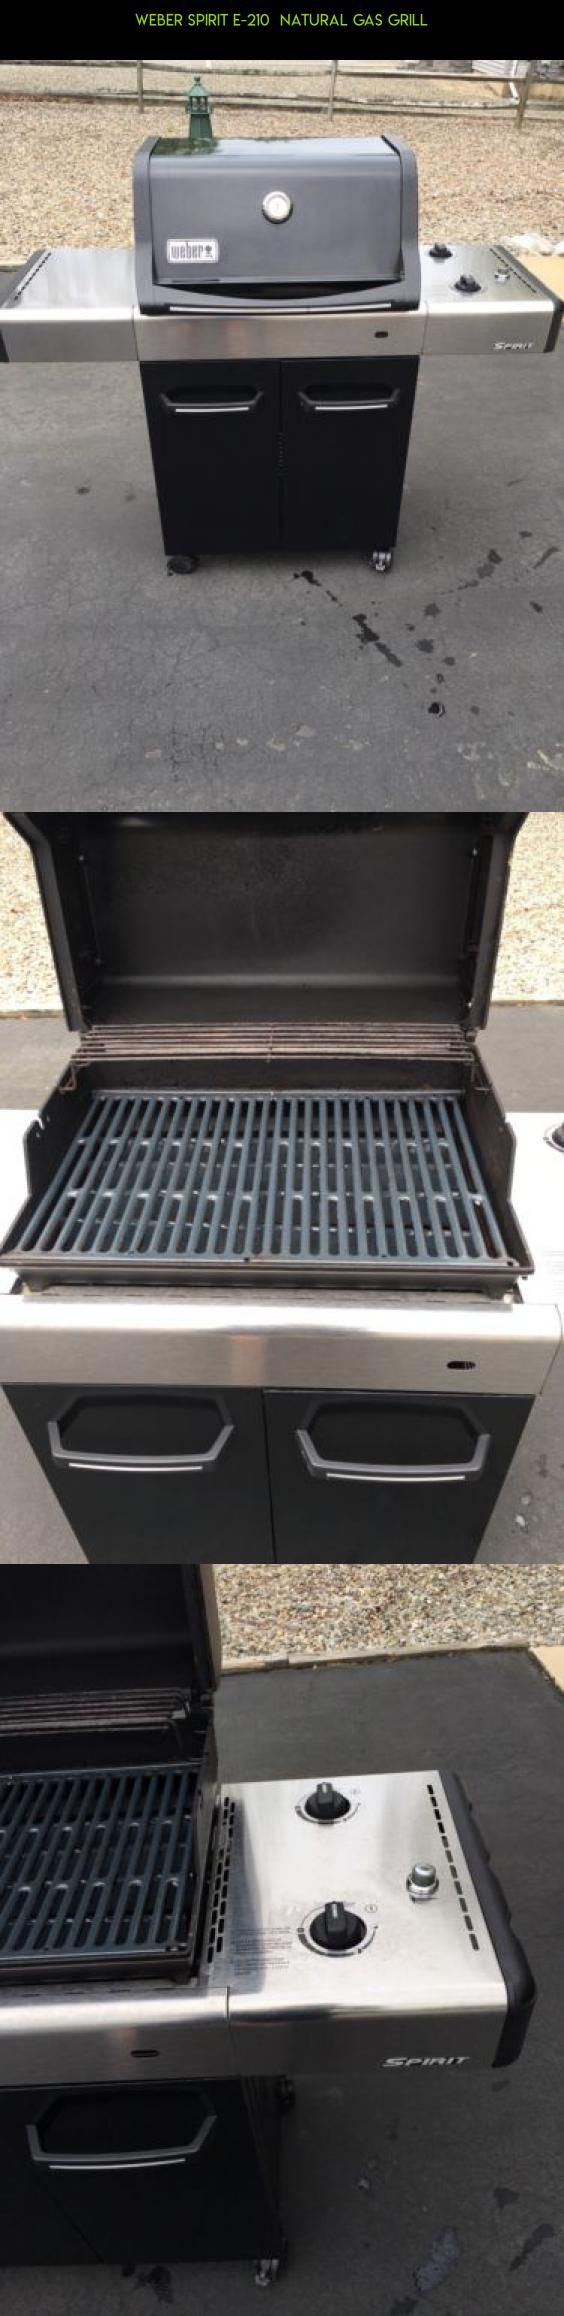 weber spirit e-210  Natural gas grill #kit #weber #plans #grills #fpv #gas #camera #racing #shopping #technology #parts #tech #drone #products #gadgets